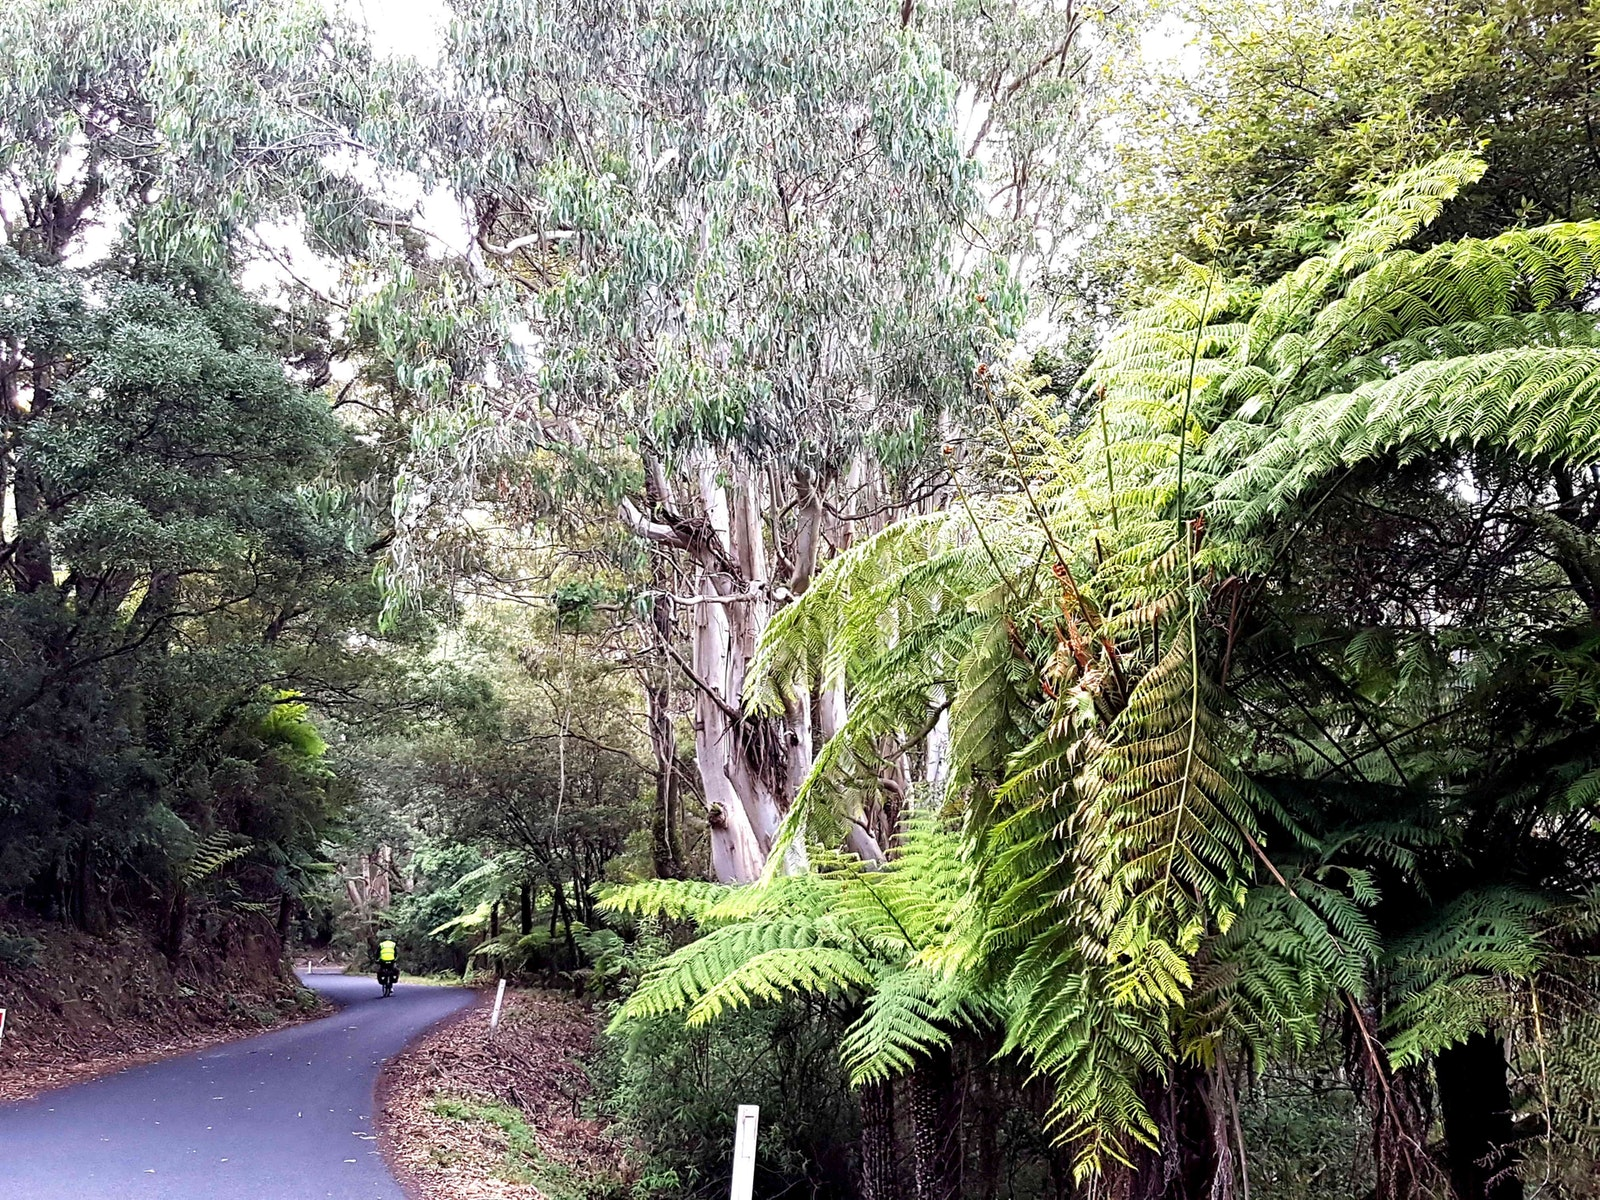 This wonderful road is hidden in eth southern Strzelcki ranges and takes you on a wonderful journey